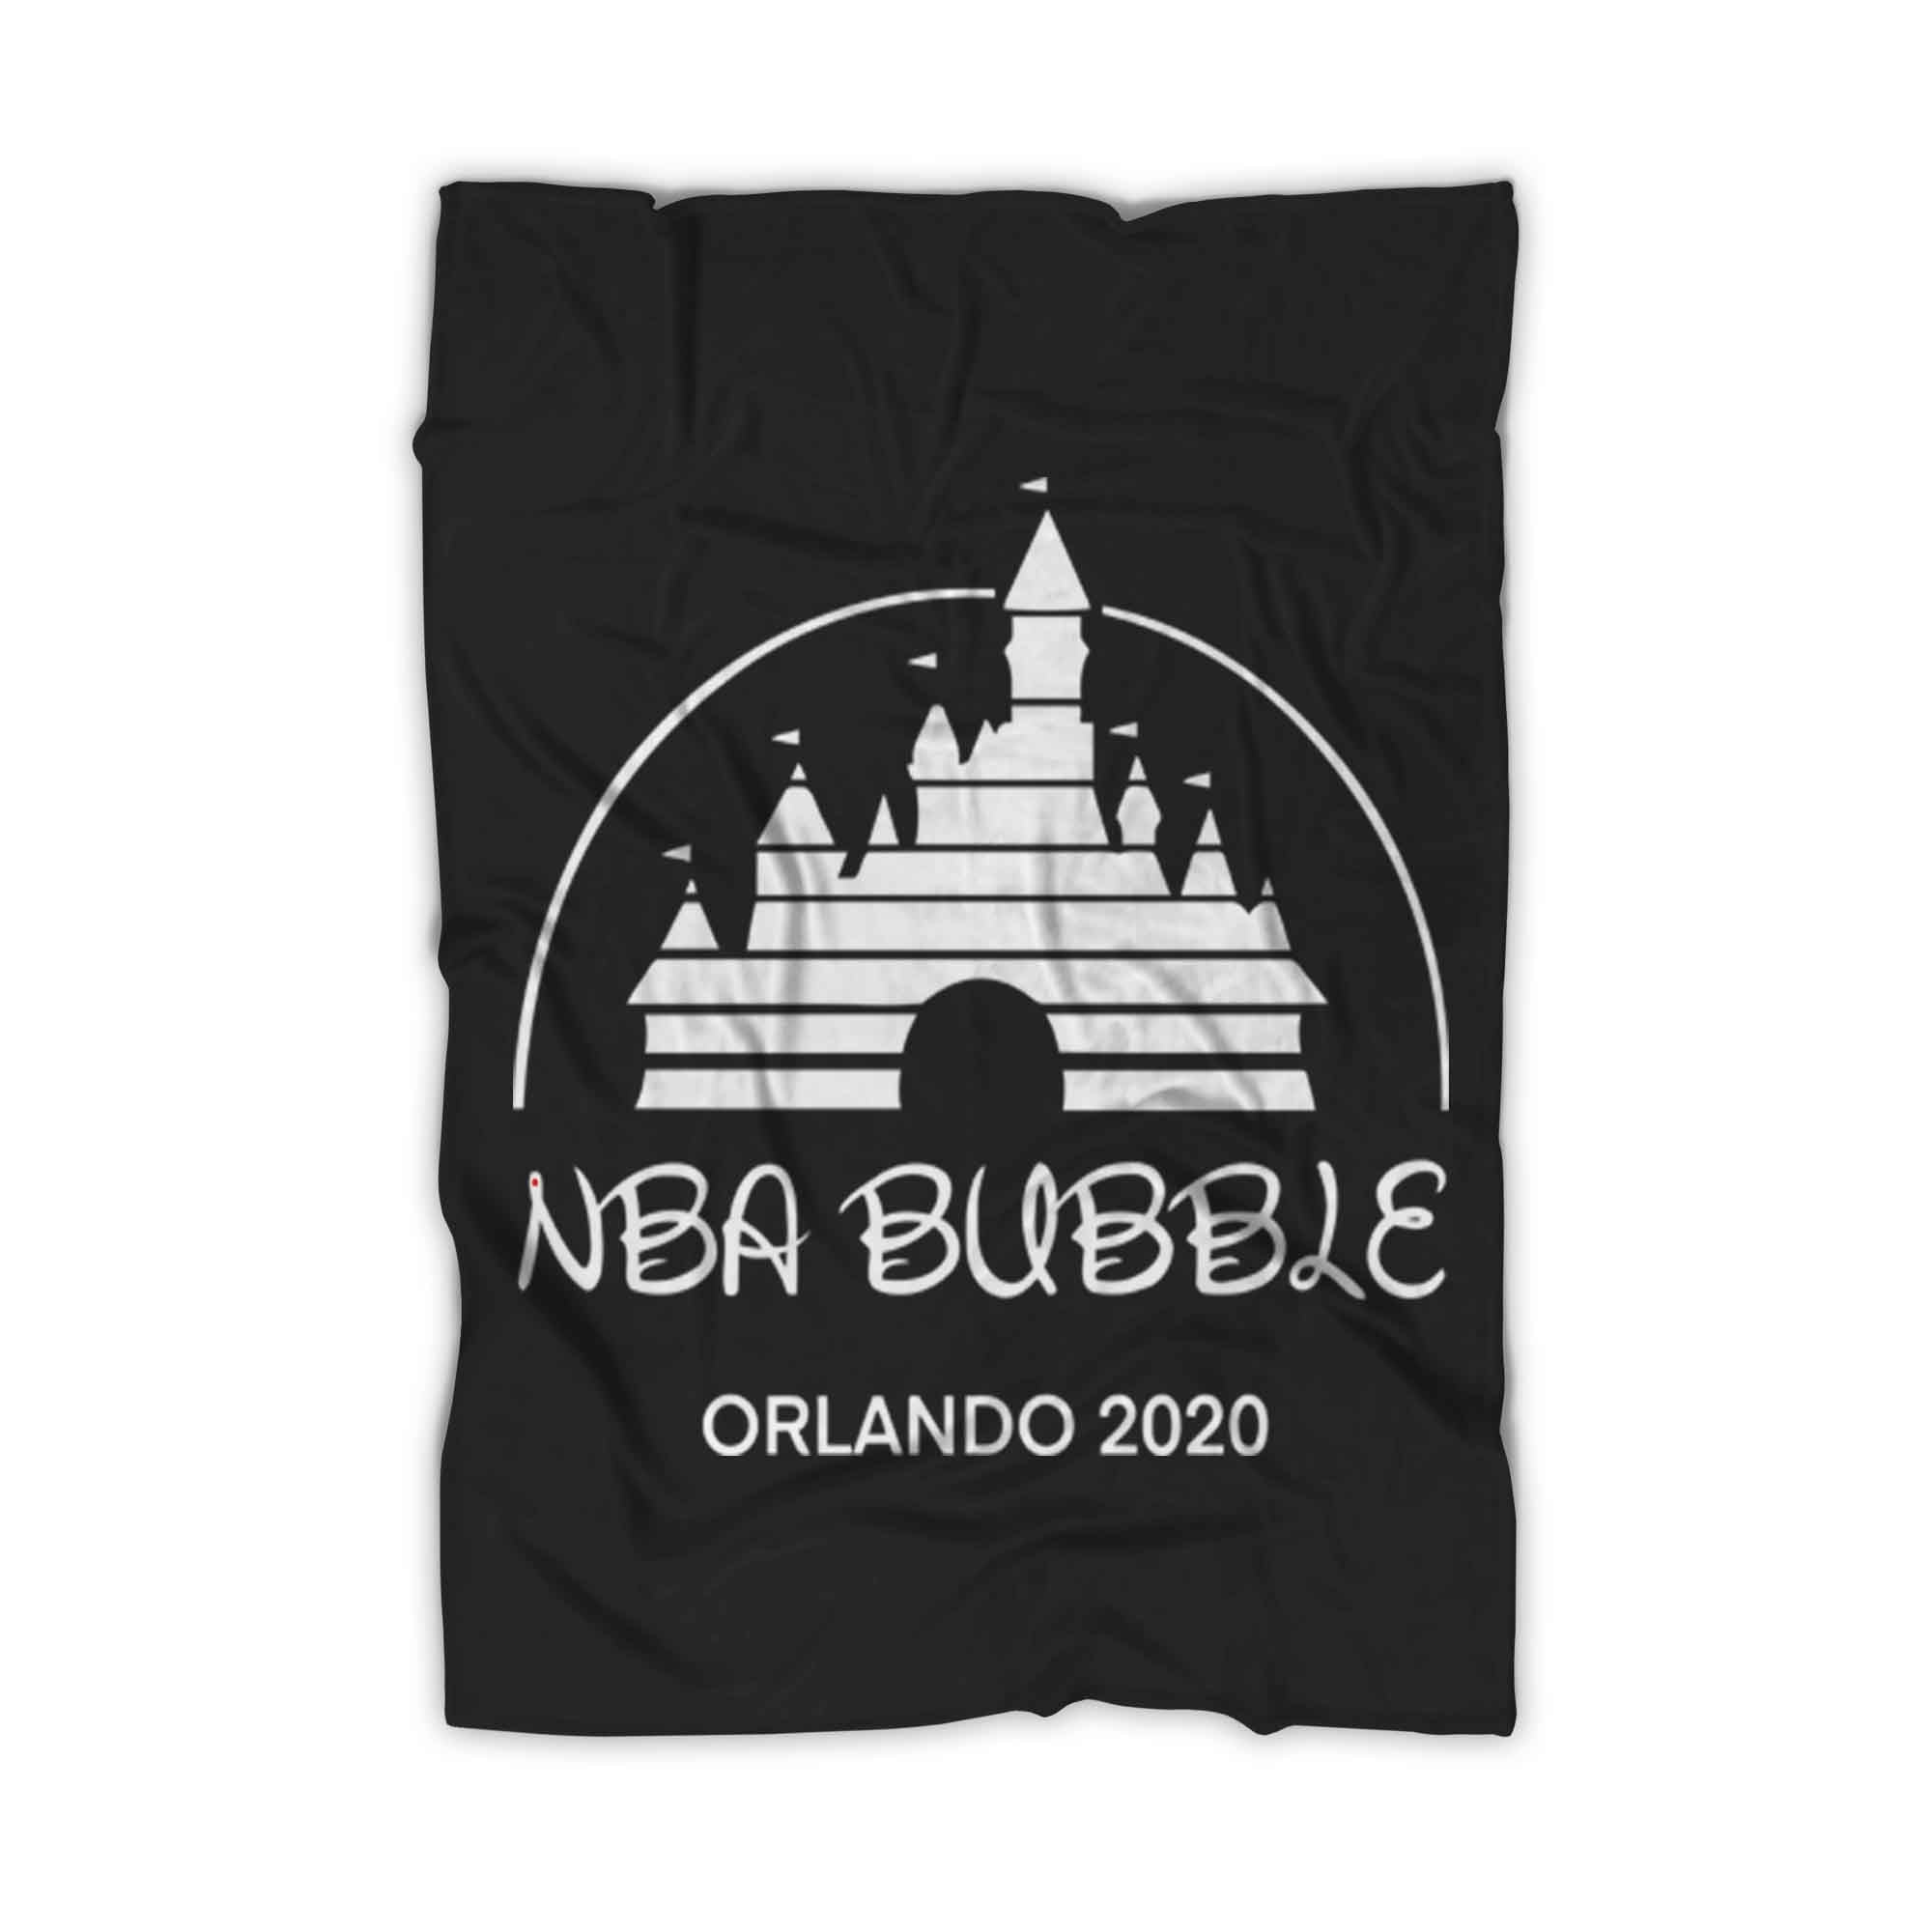 Nba Bubble Orlando 2020 Lakers Fleece Blanket - Nuu Shirtz